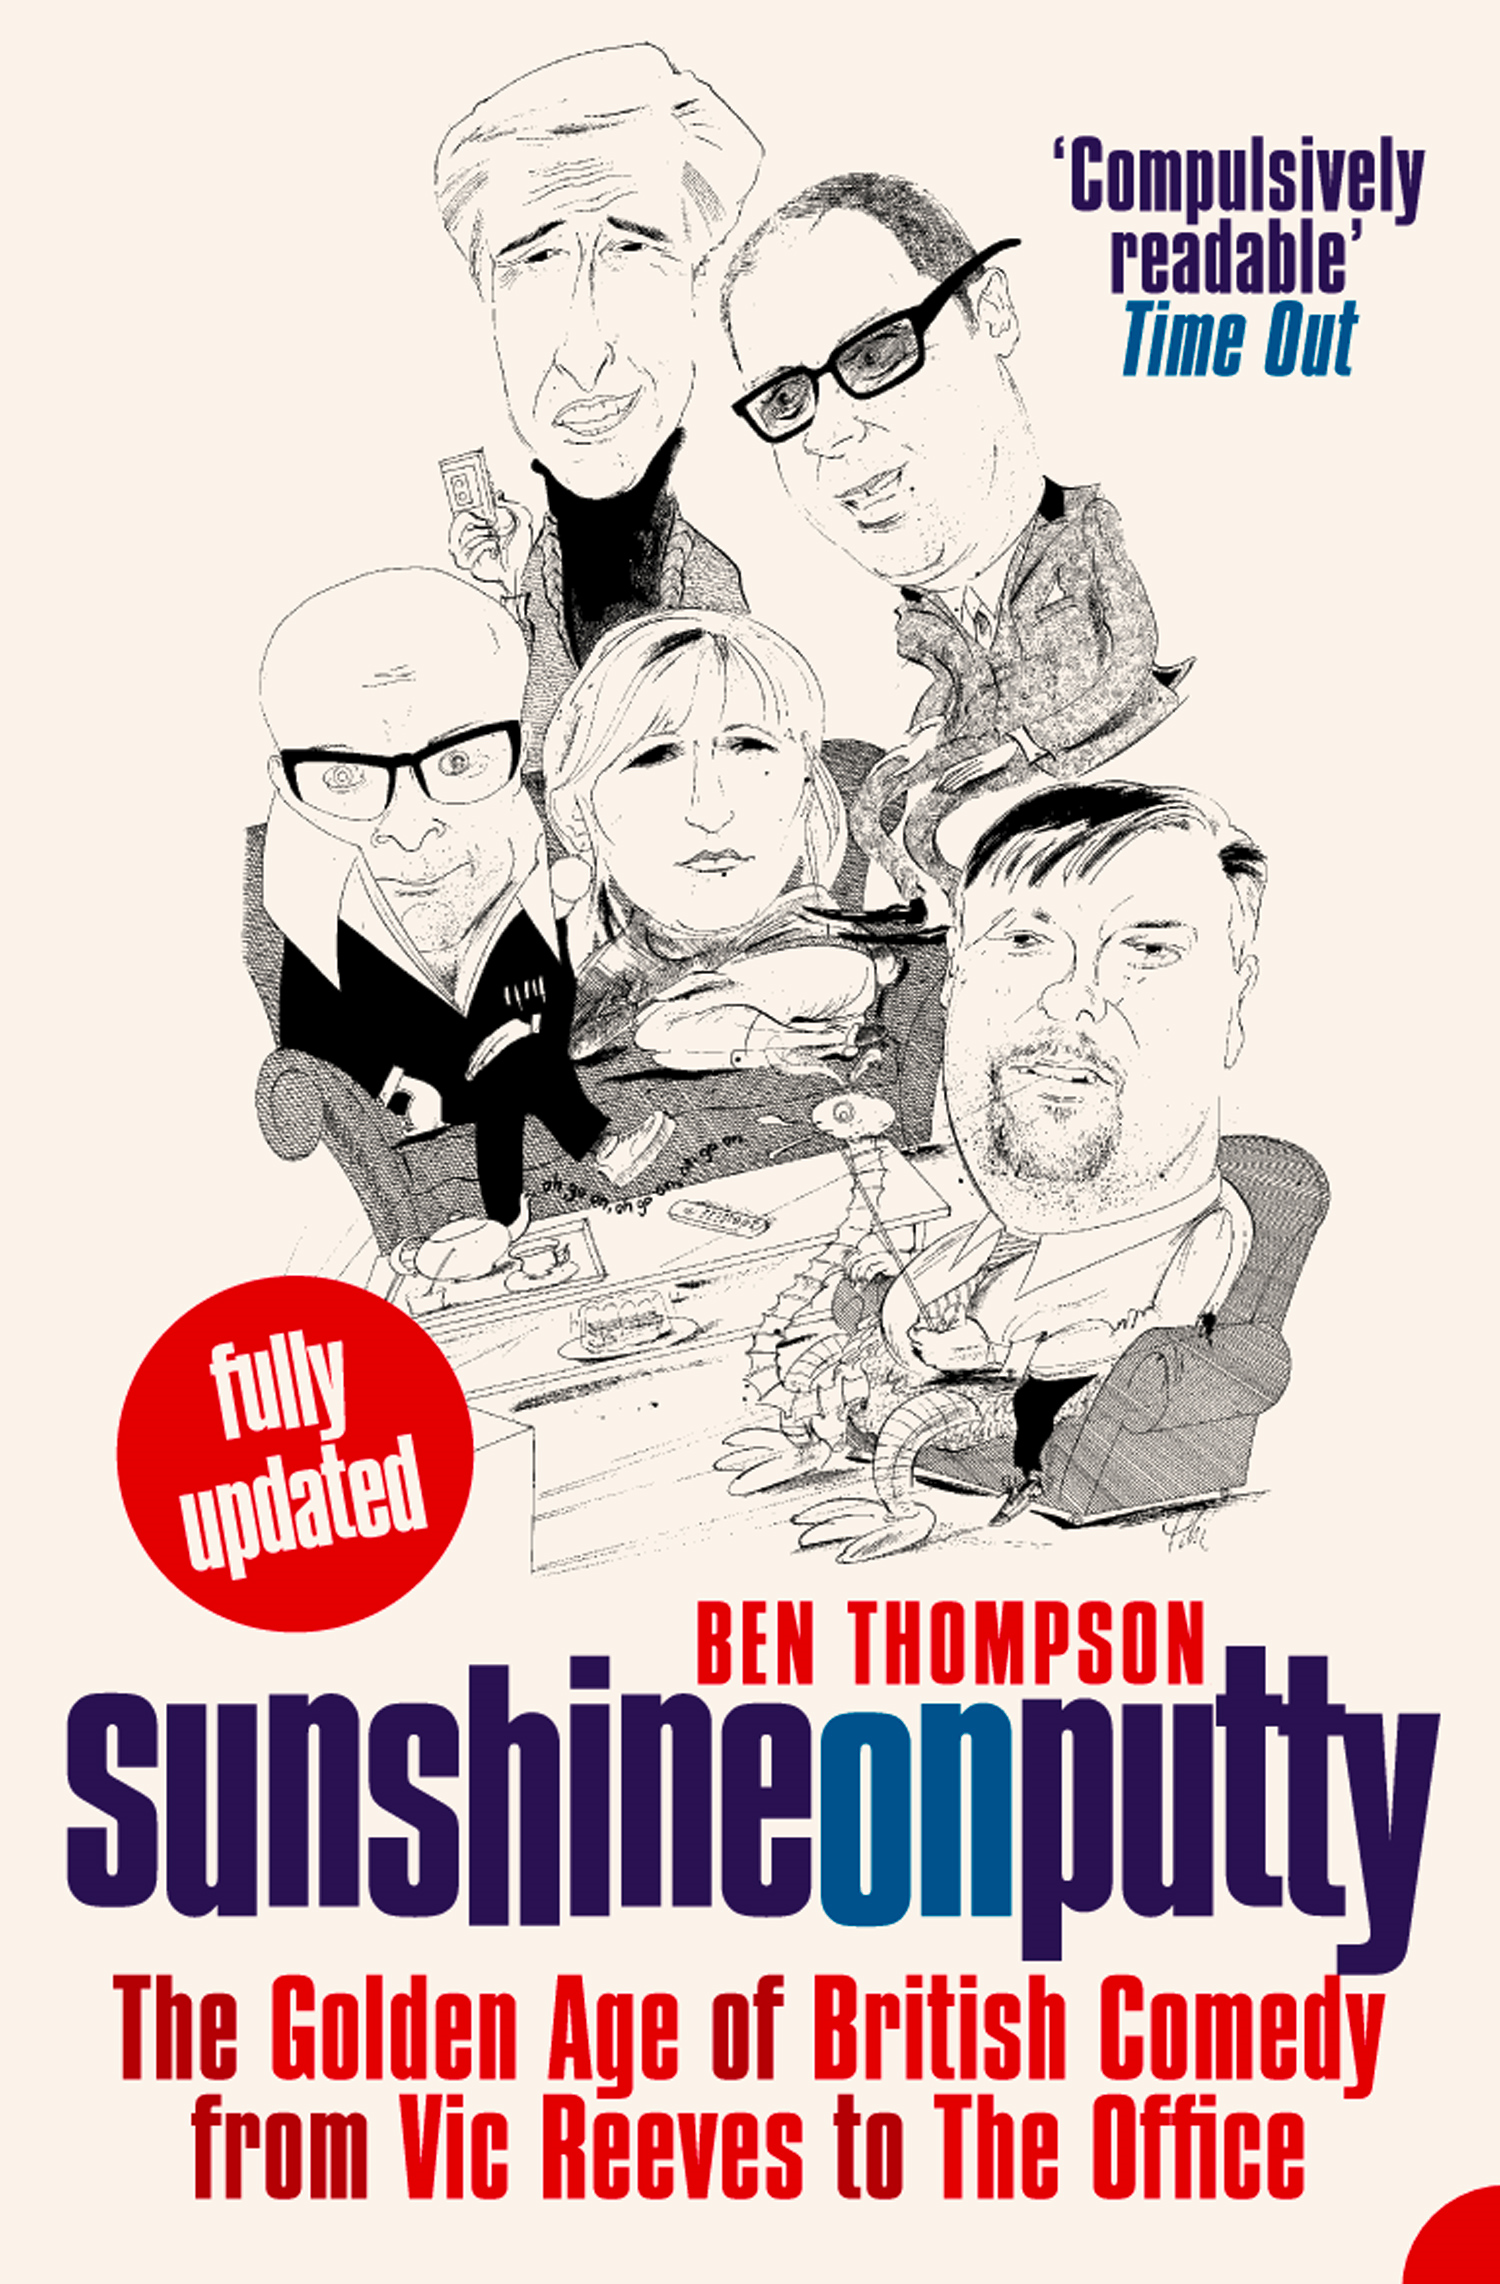 Sunshine on Putty: The Golden Age of British Comedy from Vic Reeves to The Office By: Ben Thompson